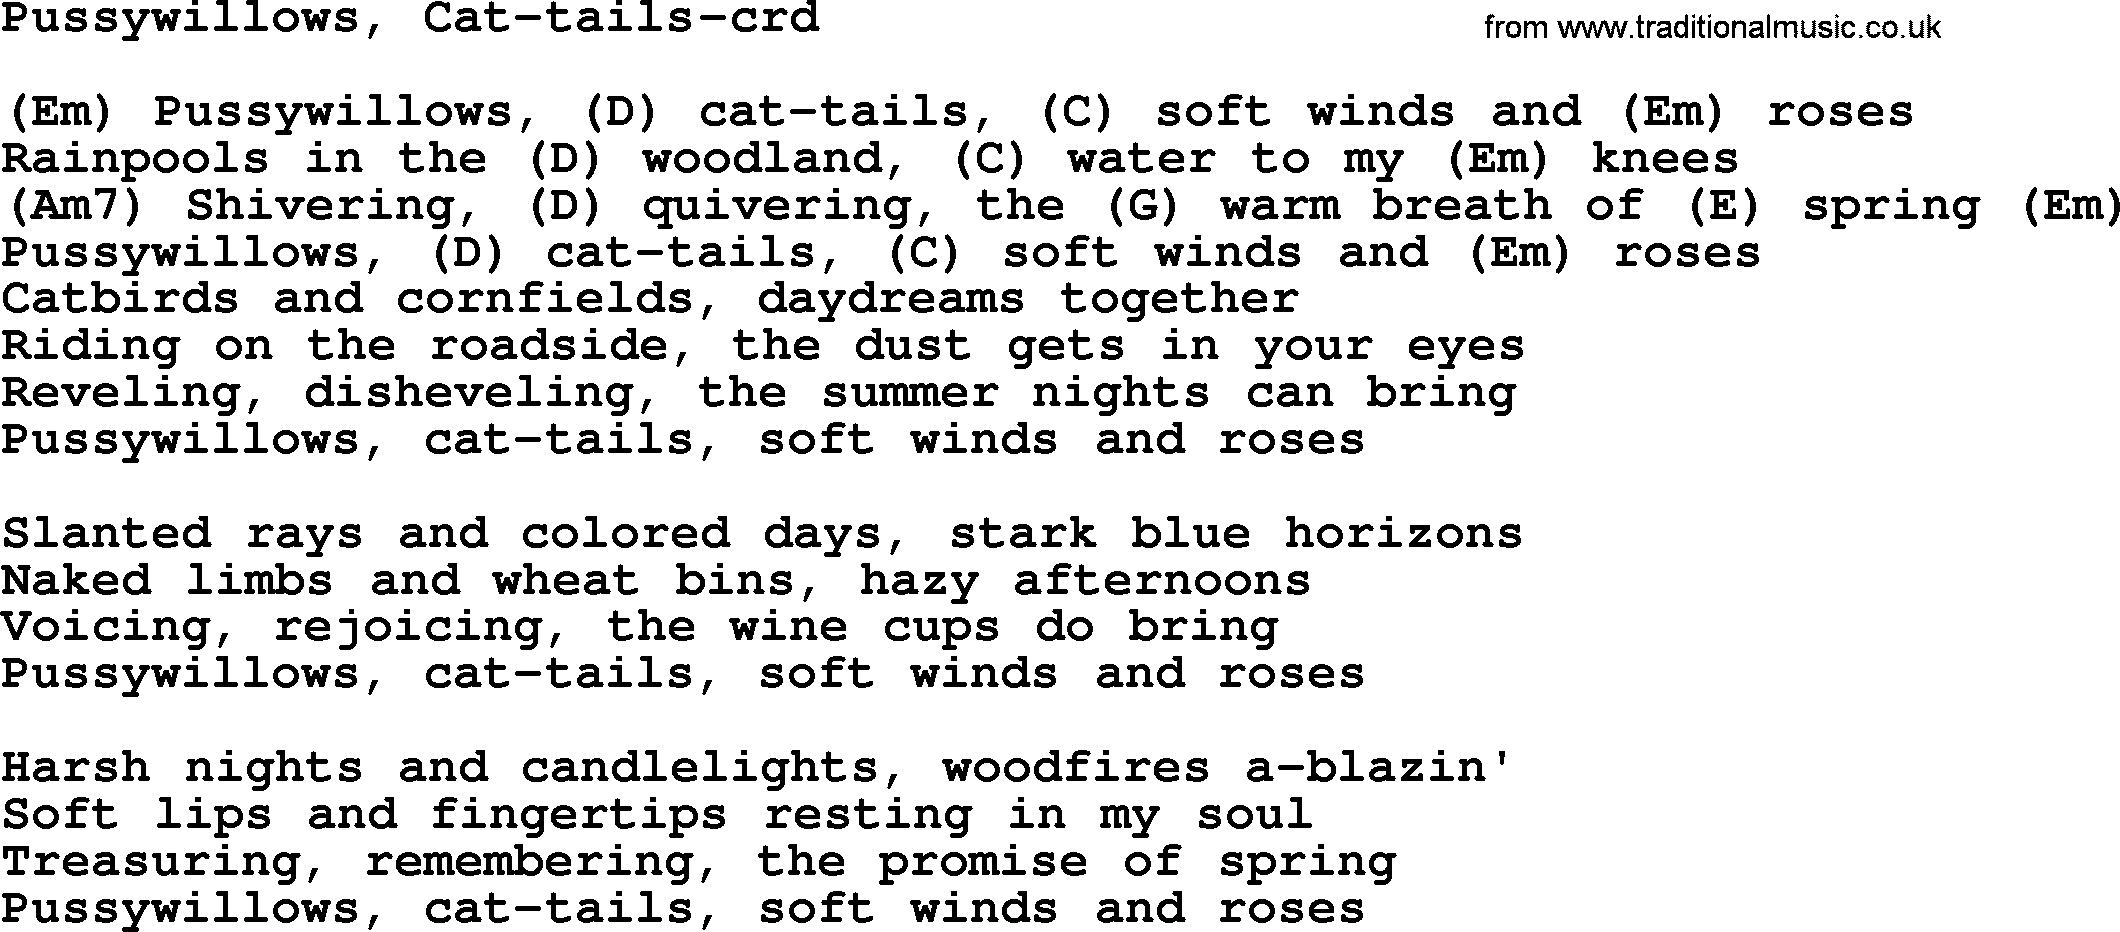 Pussywillows Cat Tails By Gordon Lightfoot Lyrics And Chords